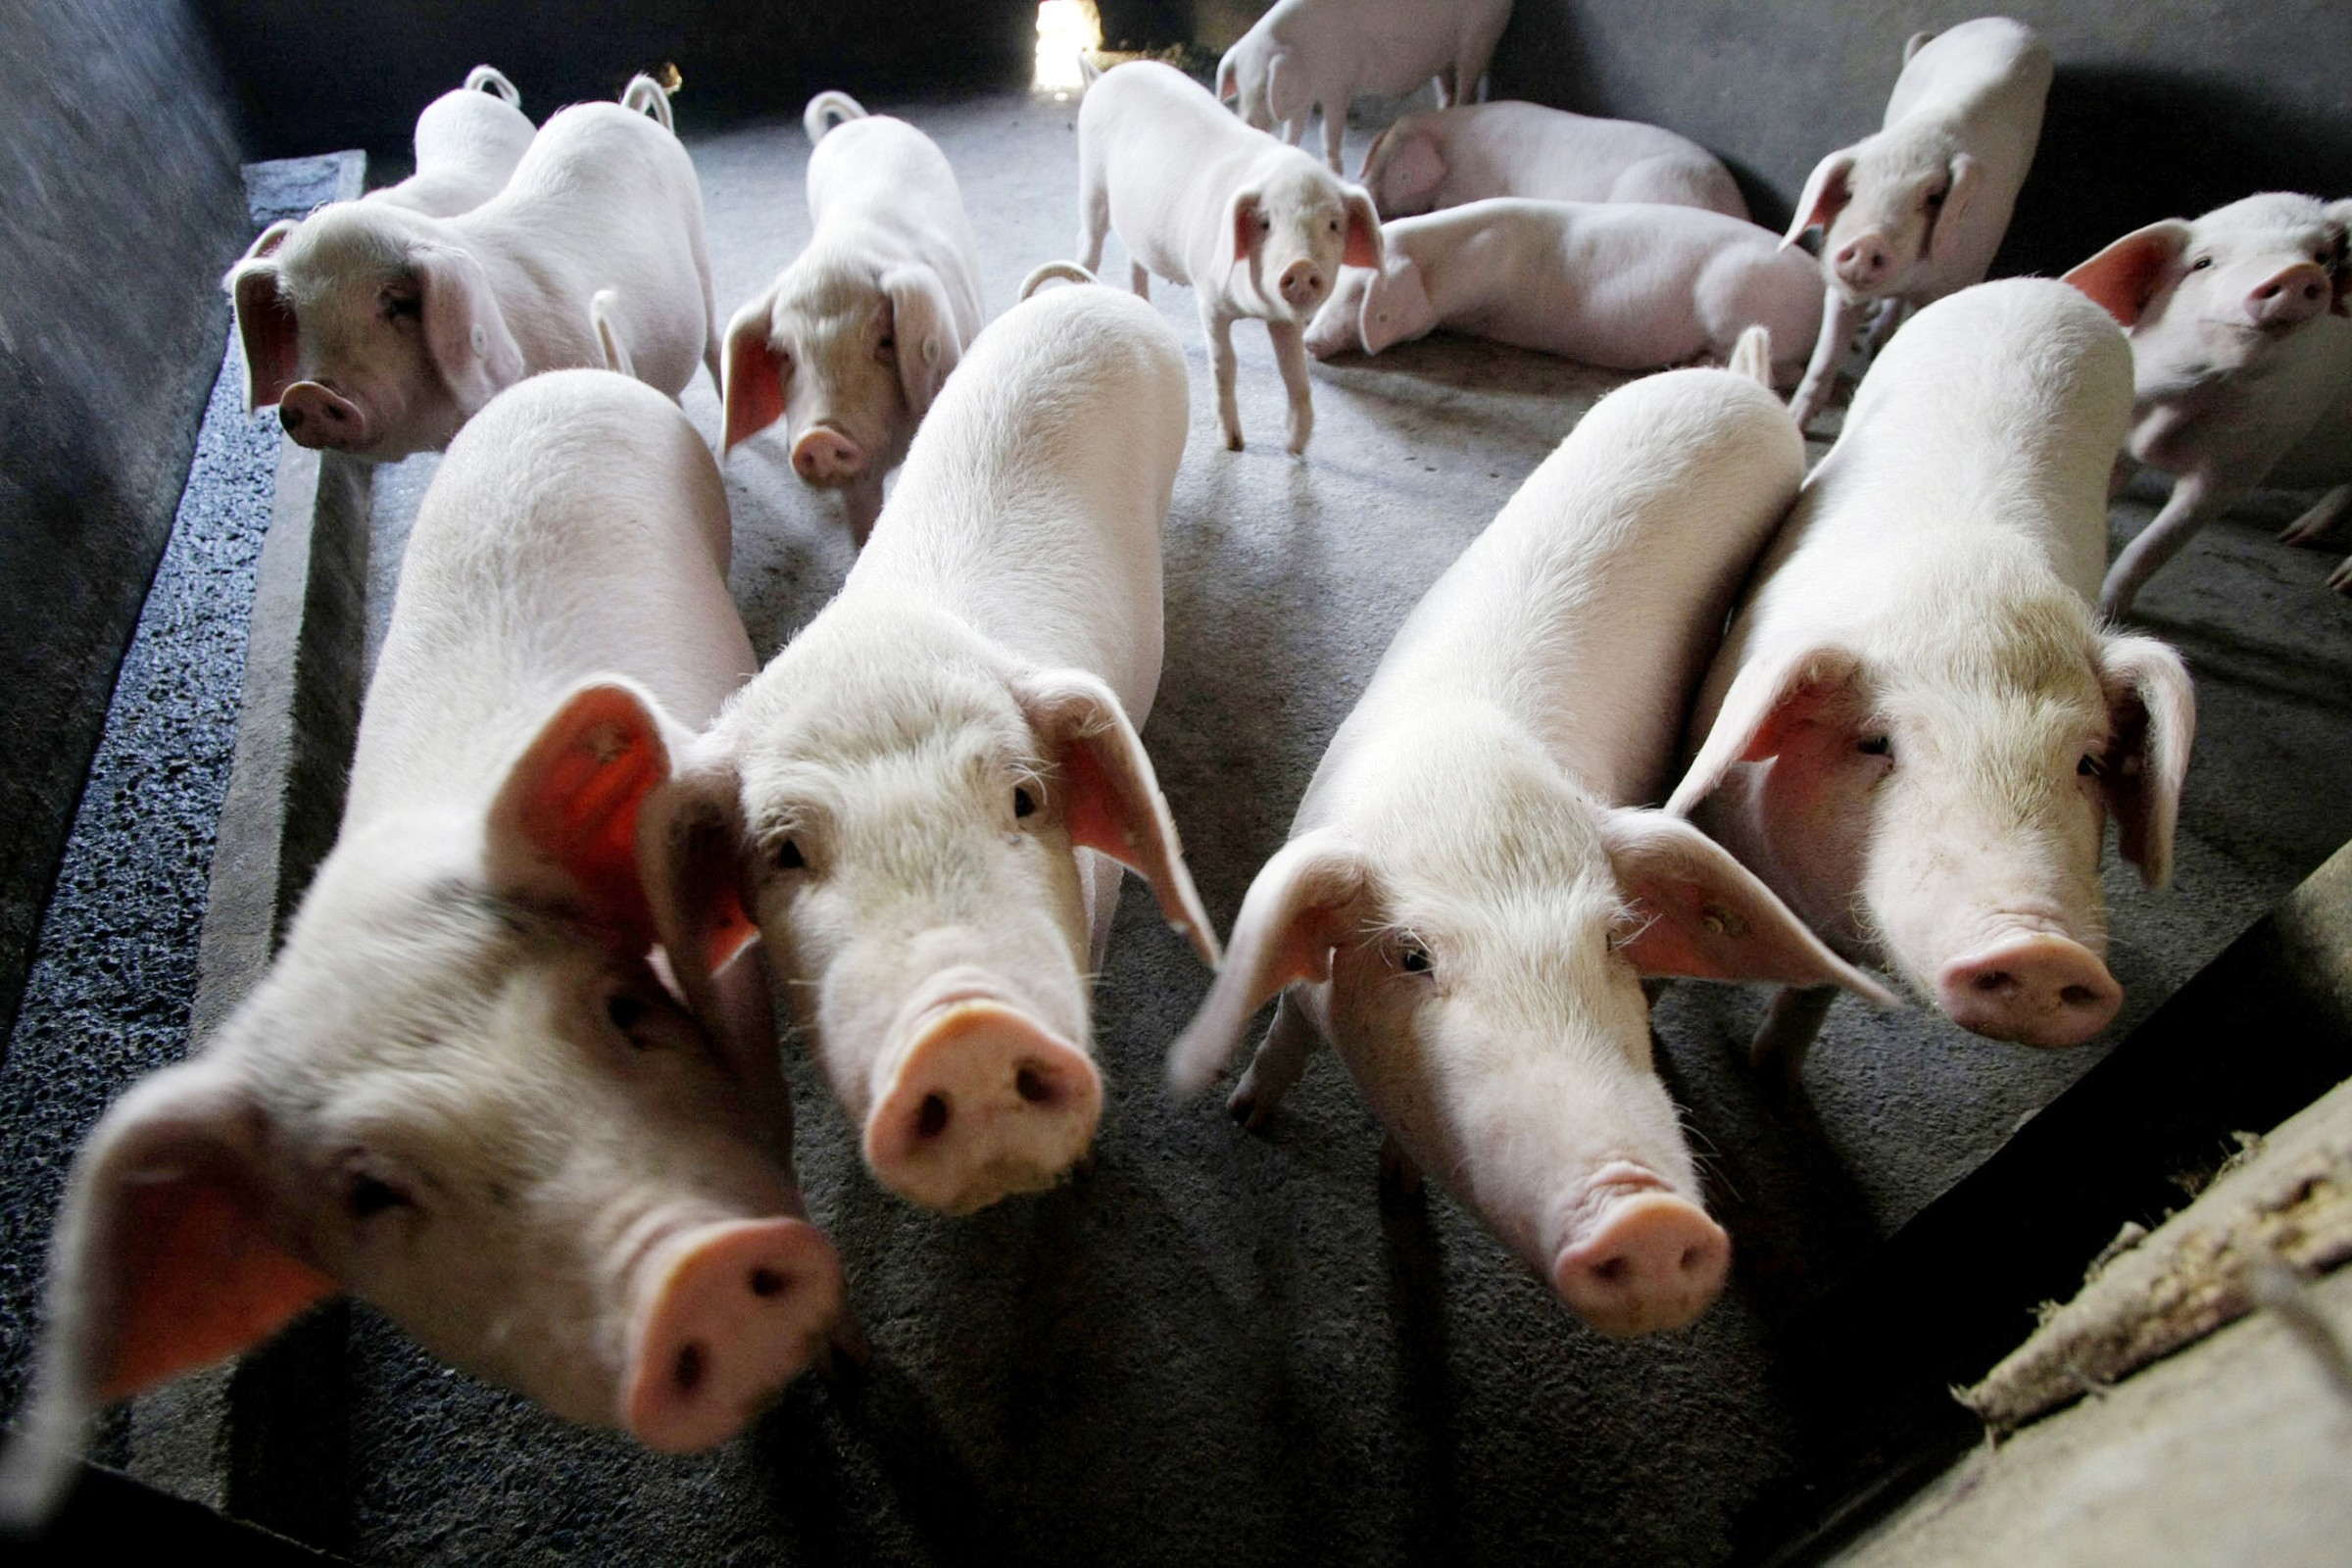 Chinese food producers warned pork consumption will suffer after more reports of African swine fever